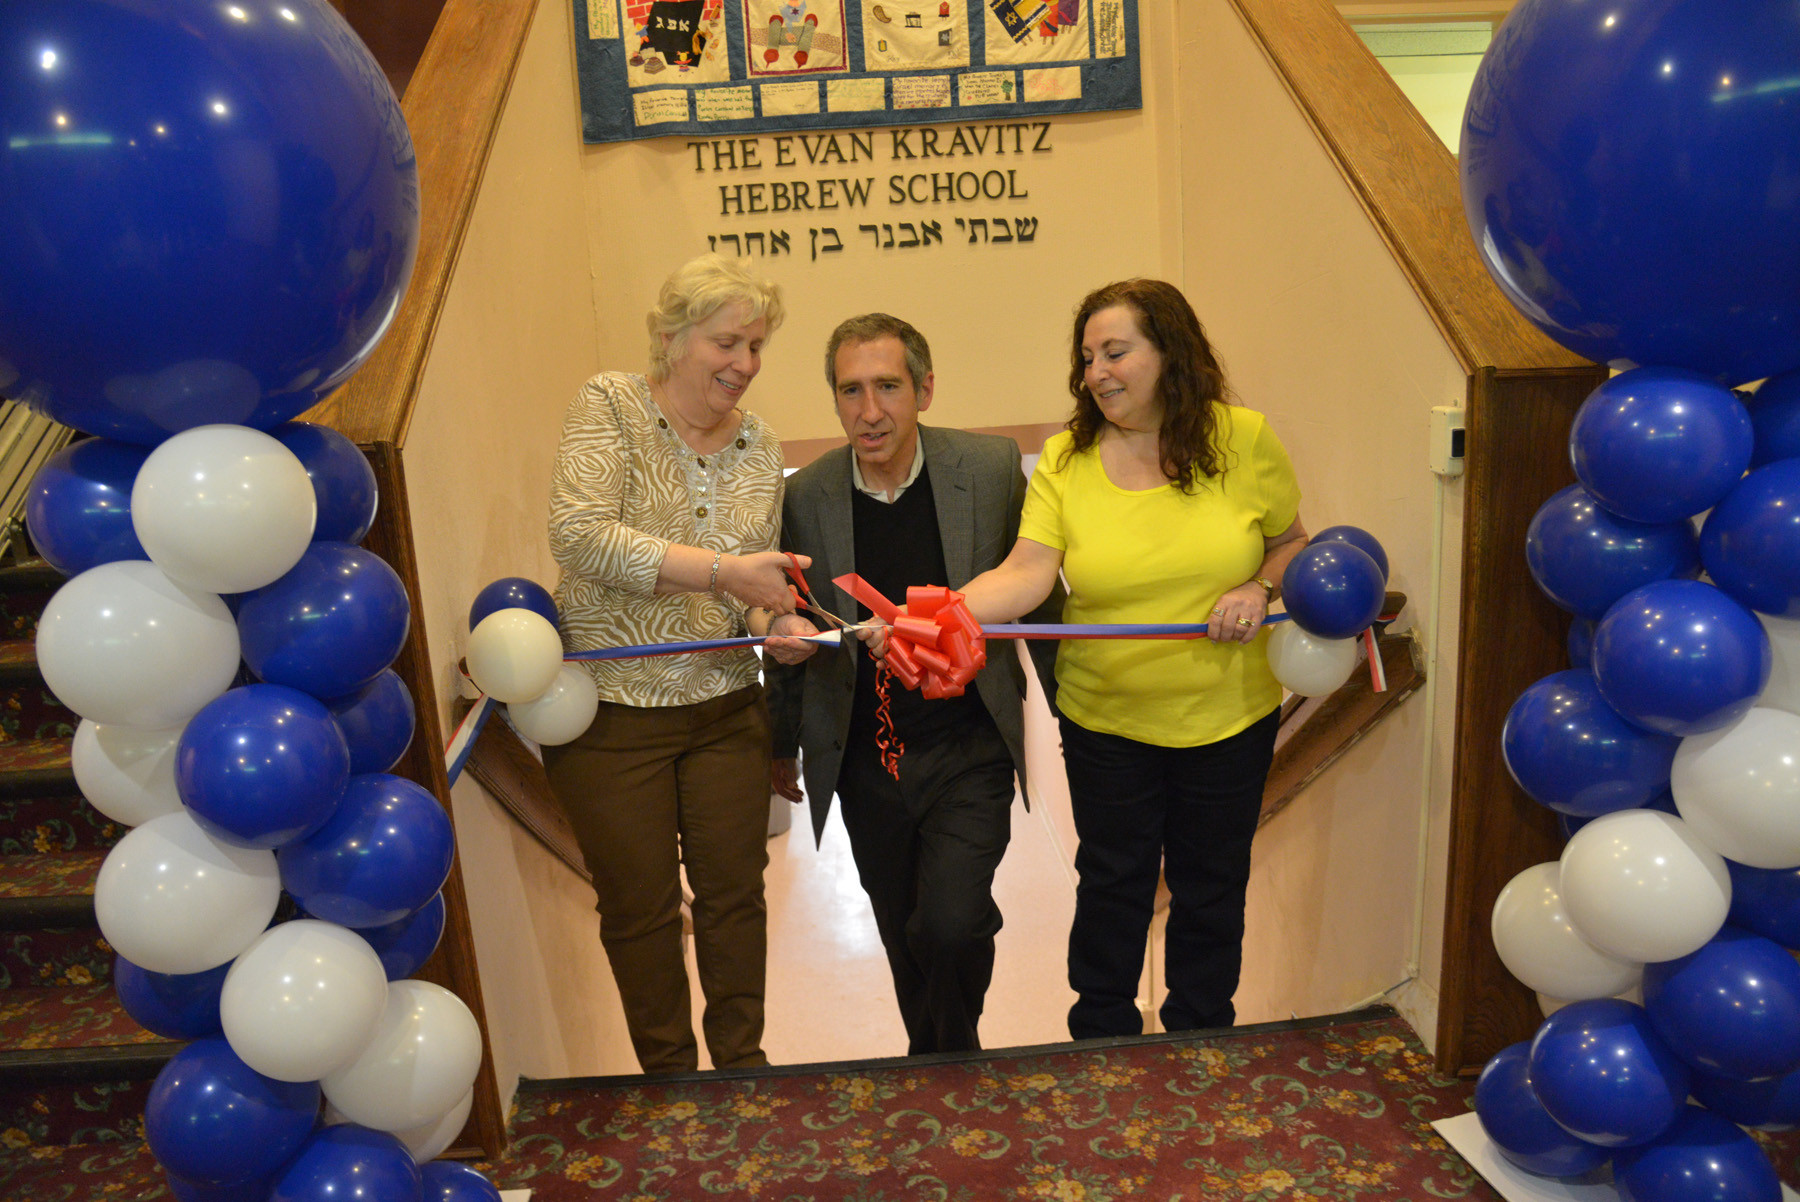 Temple president Barbara Rothstein, Rabbi Scott Hoffman and Executive Vice President Gail Kanner cut the ribbon on the rebuilt Hebrew school.